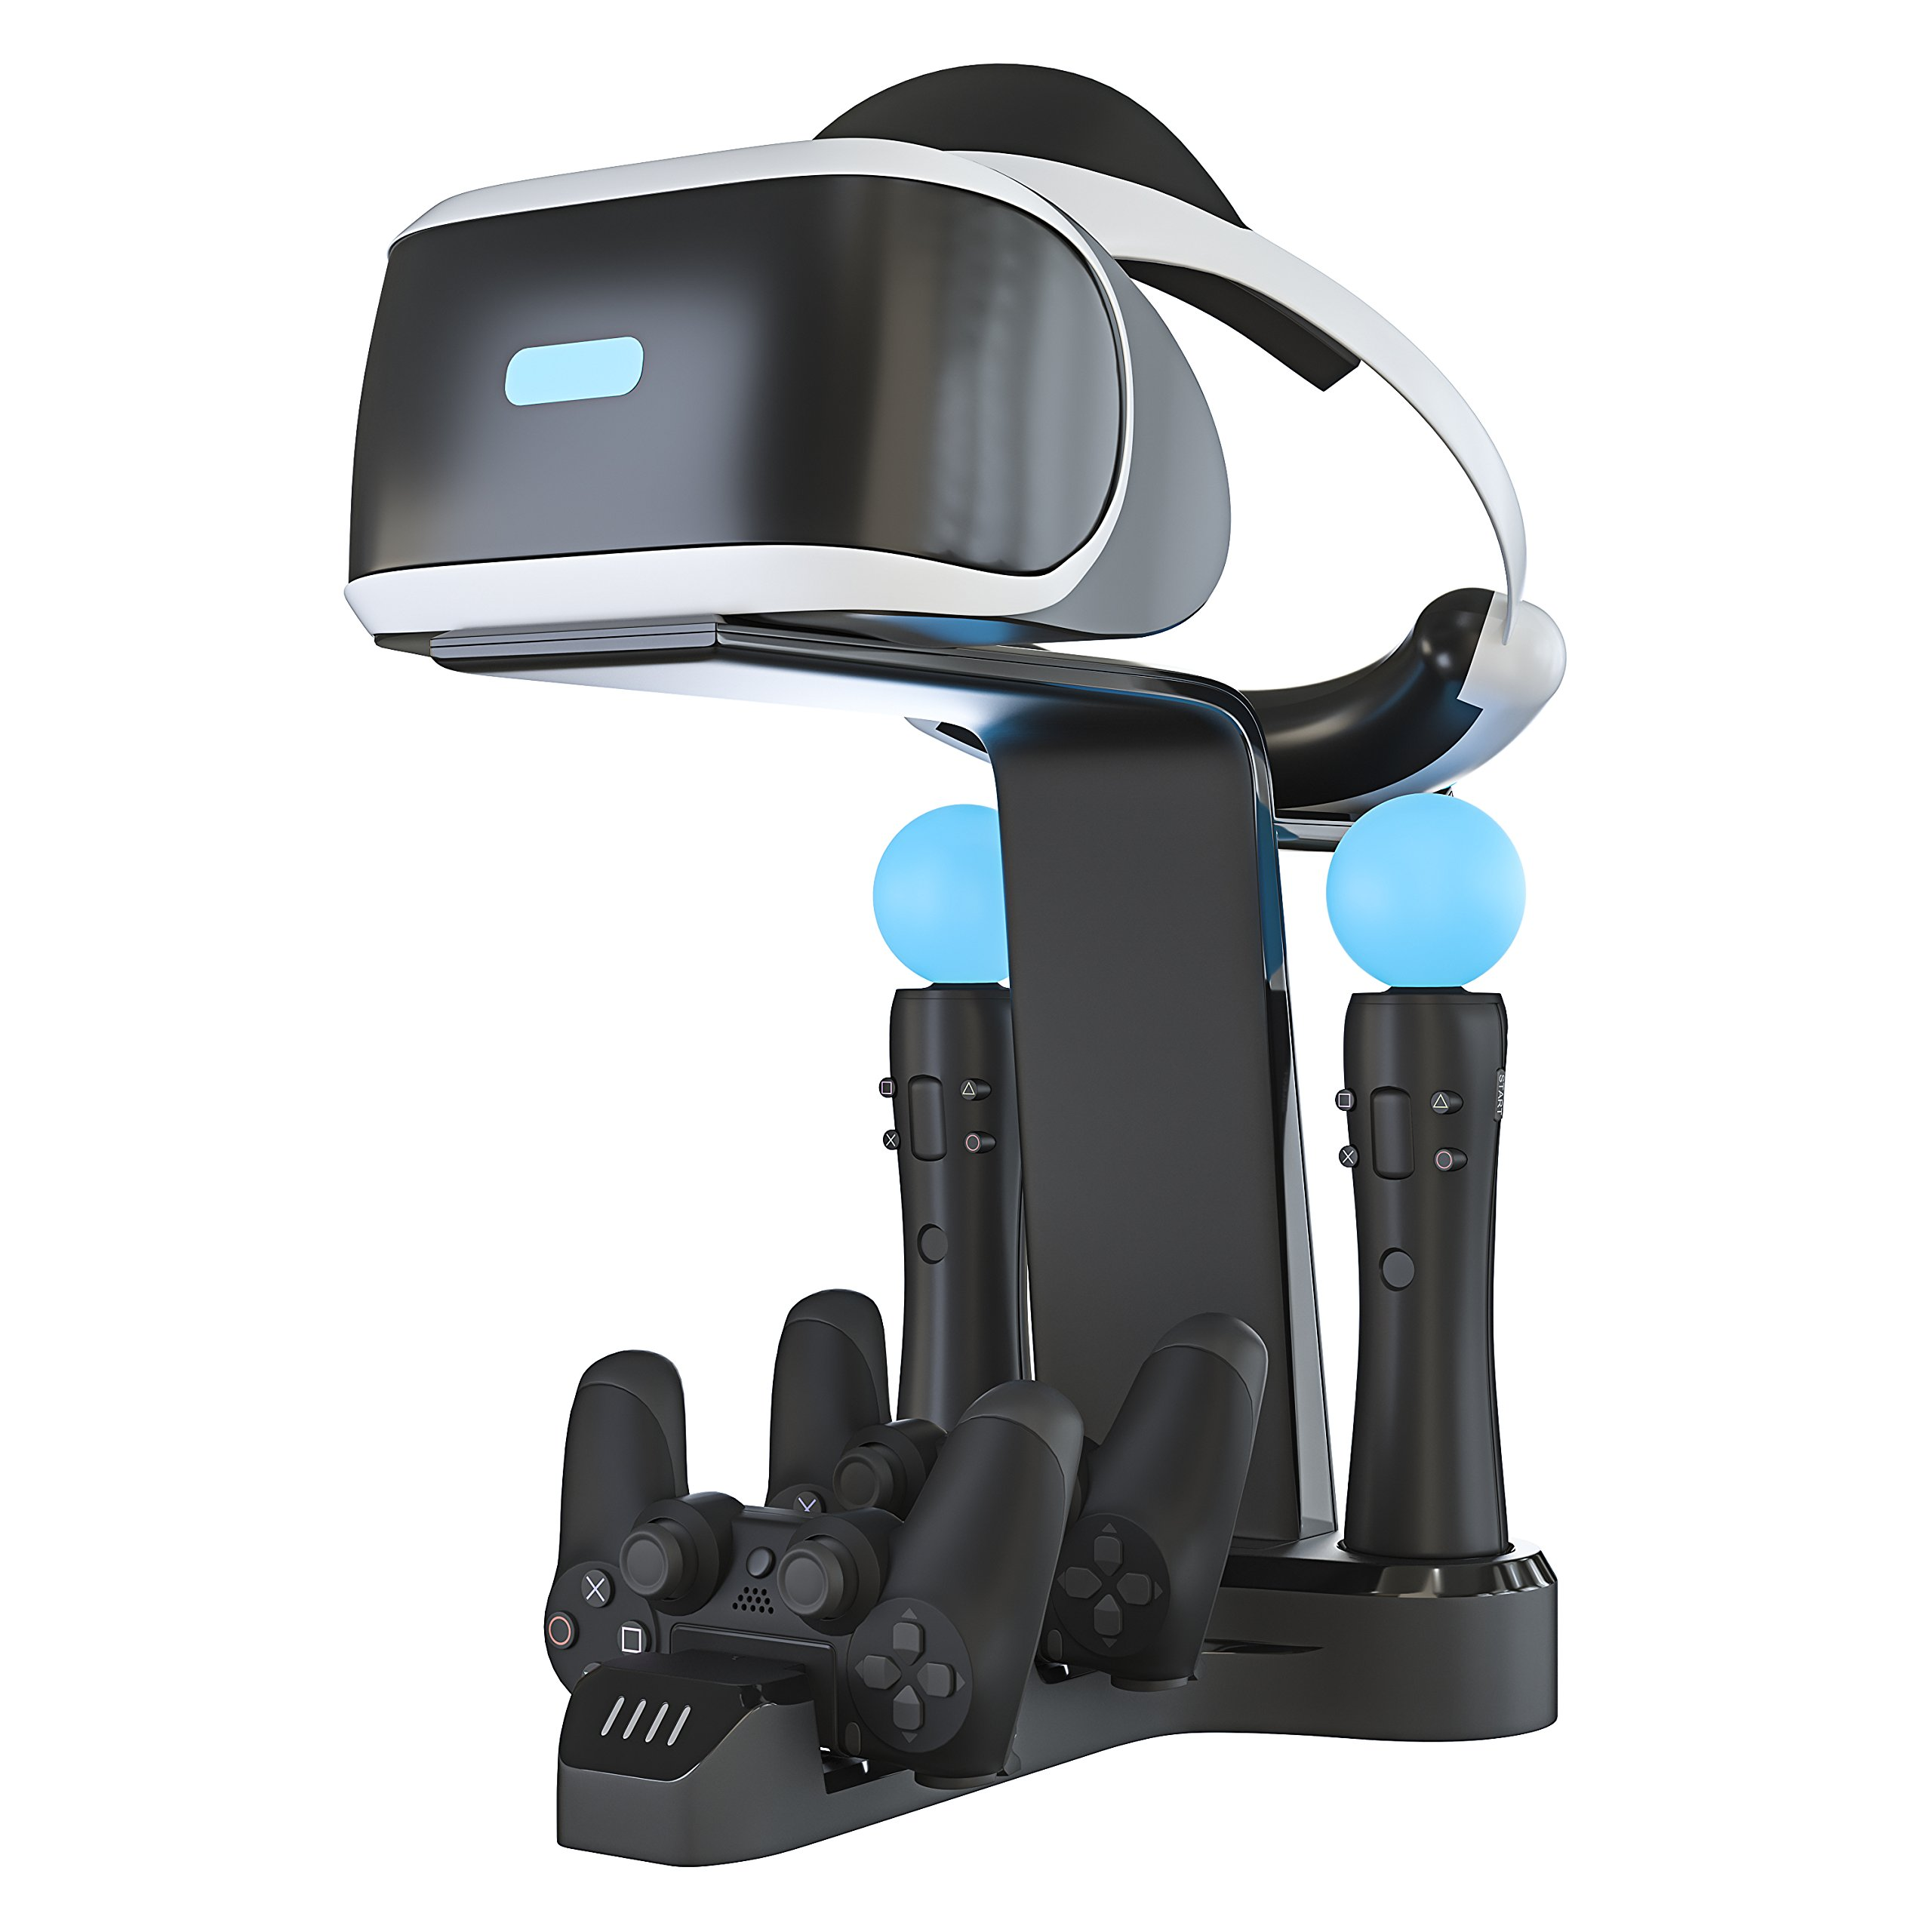 Skywin Playstation VR Charging Stand - PSVR Charging Stand to Showcase, Display, and Charge Your PS4 VR by Skywin